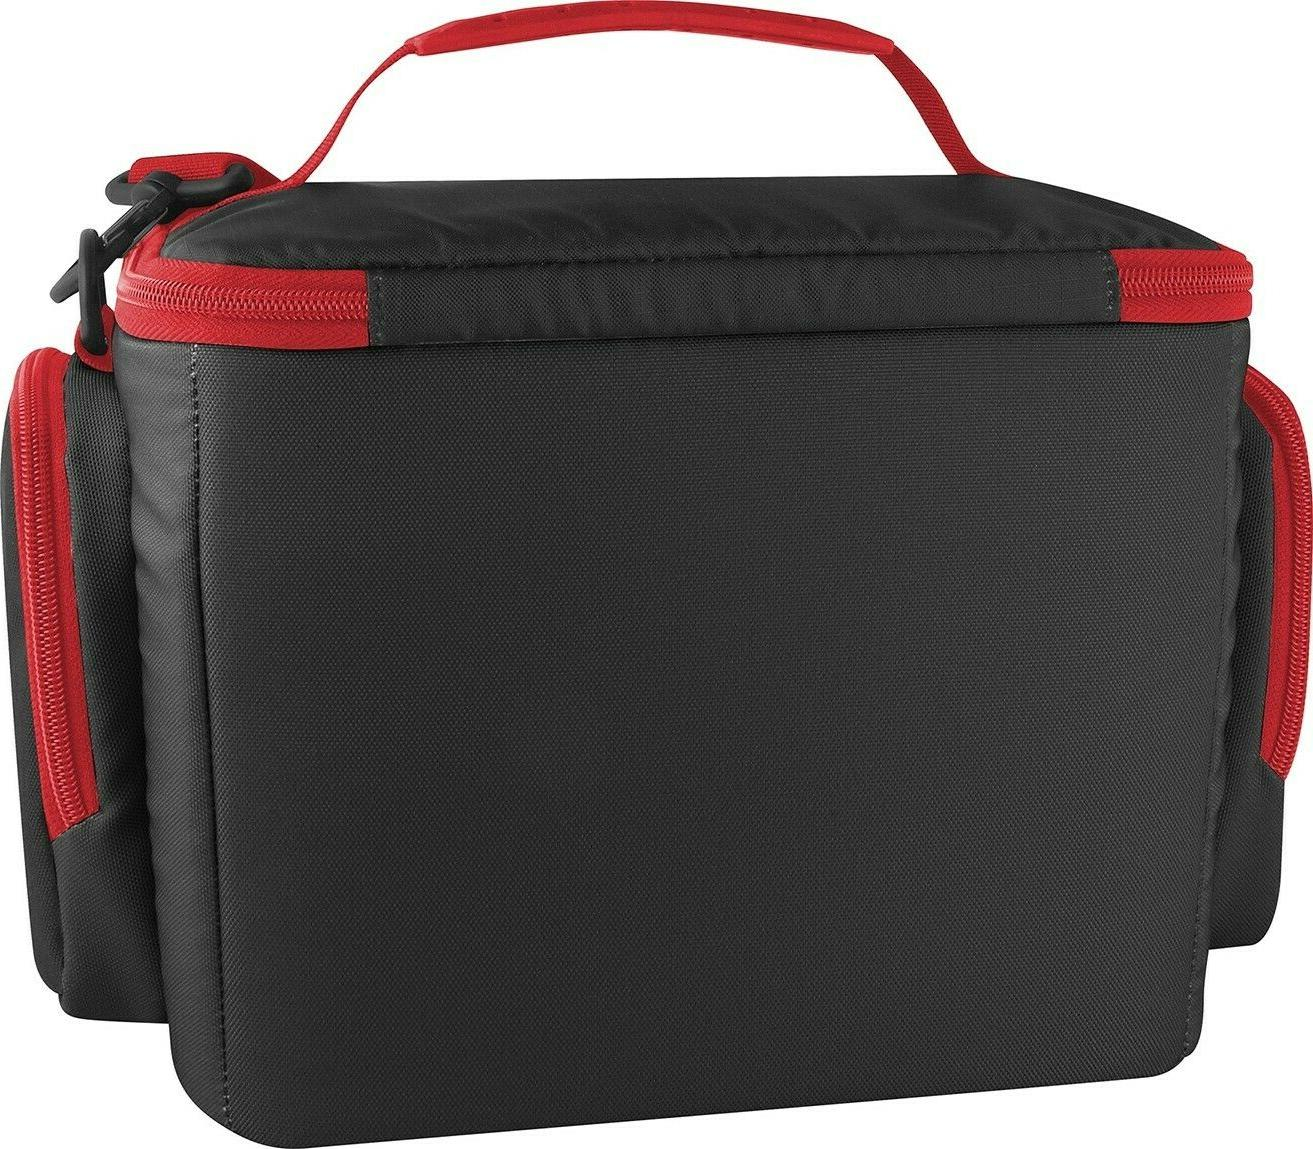 Under 12 Cooler Insulated And Unisex Bag